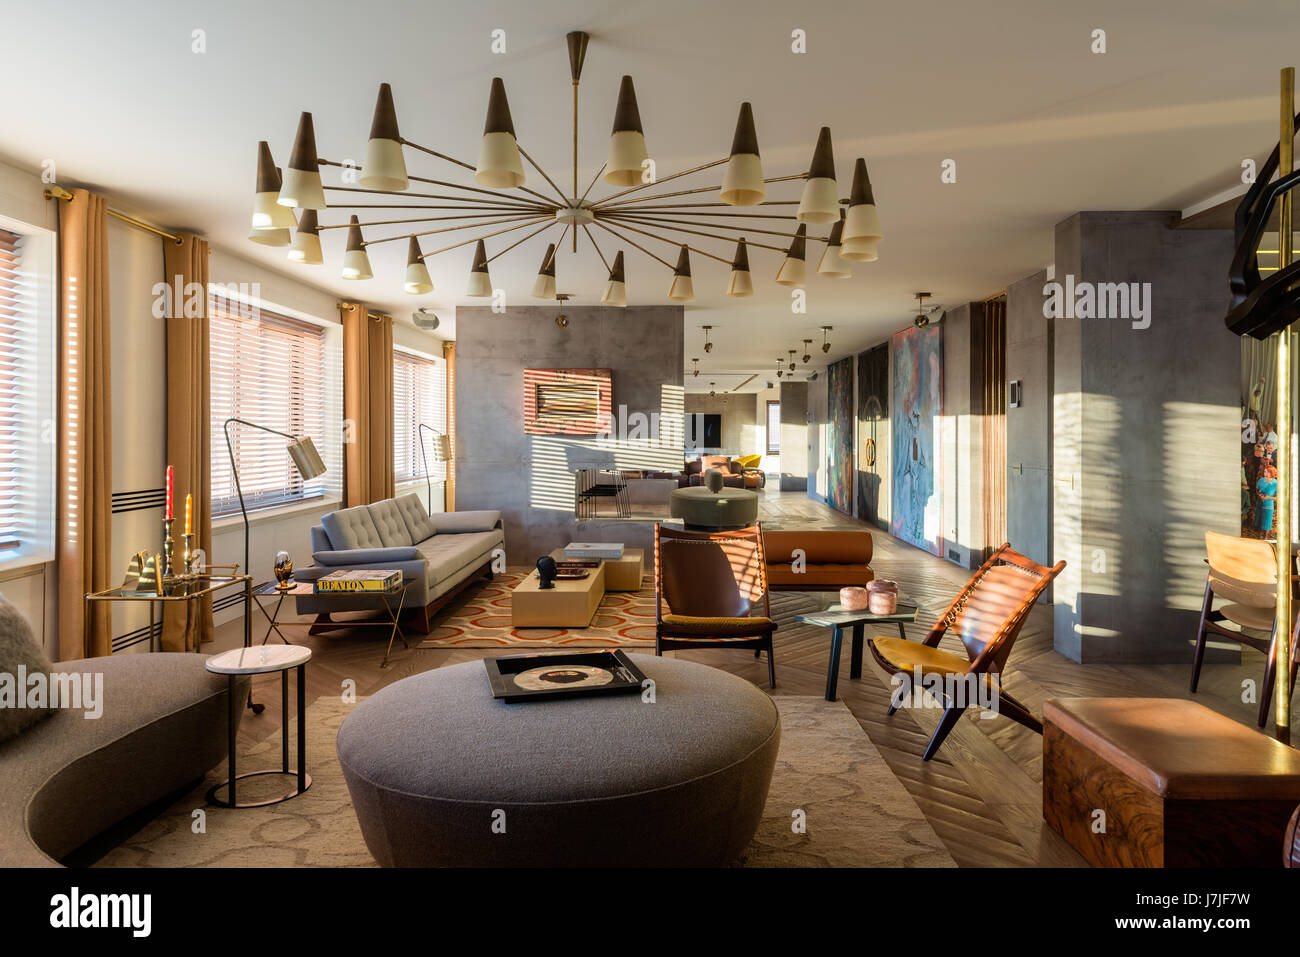 Seating area with 1950s style lights in 30 metre living space of Istanbul apartment - Stock Image